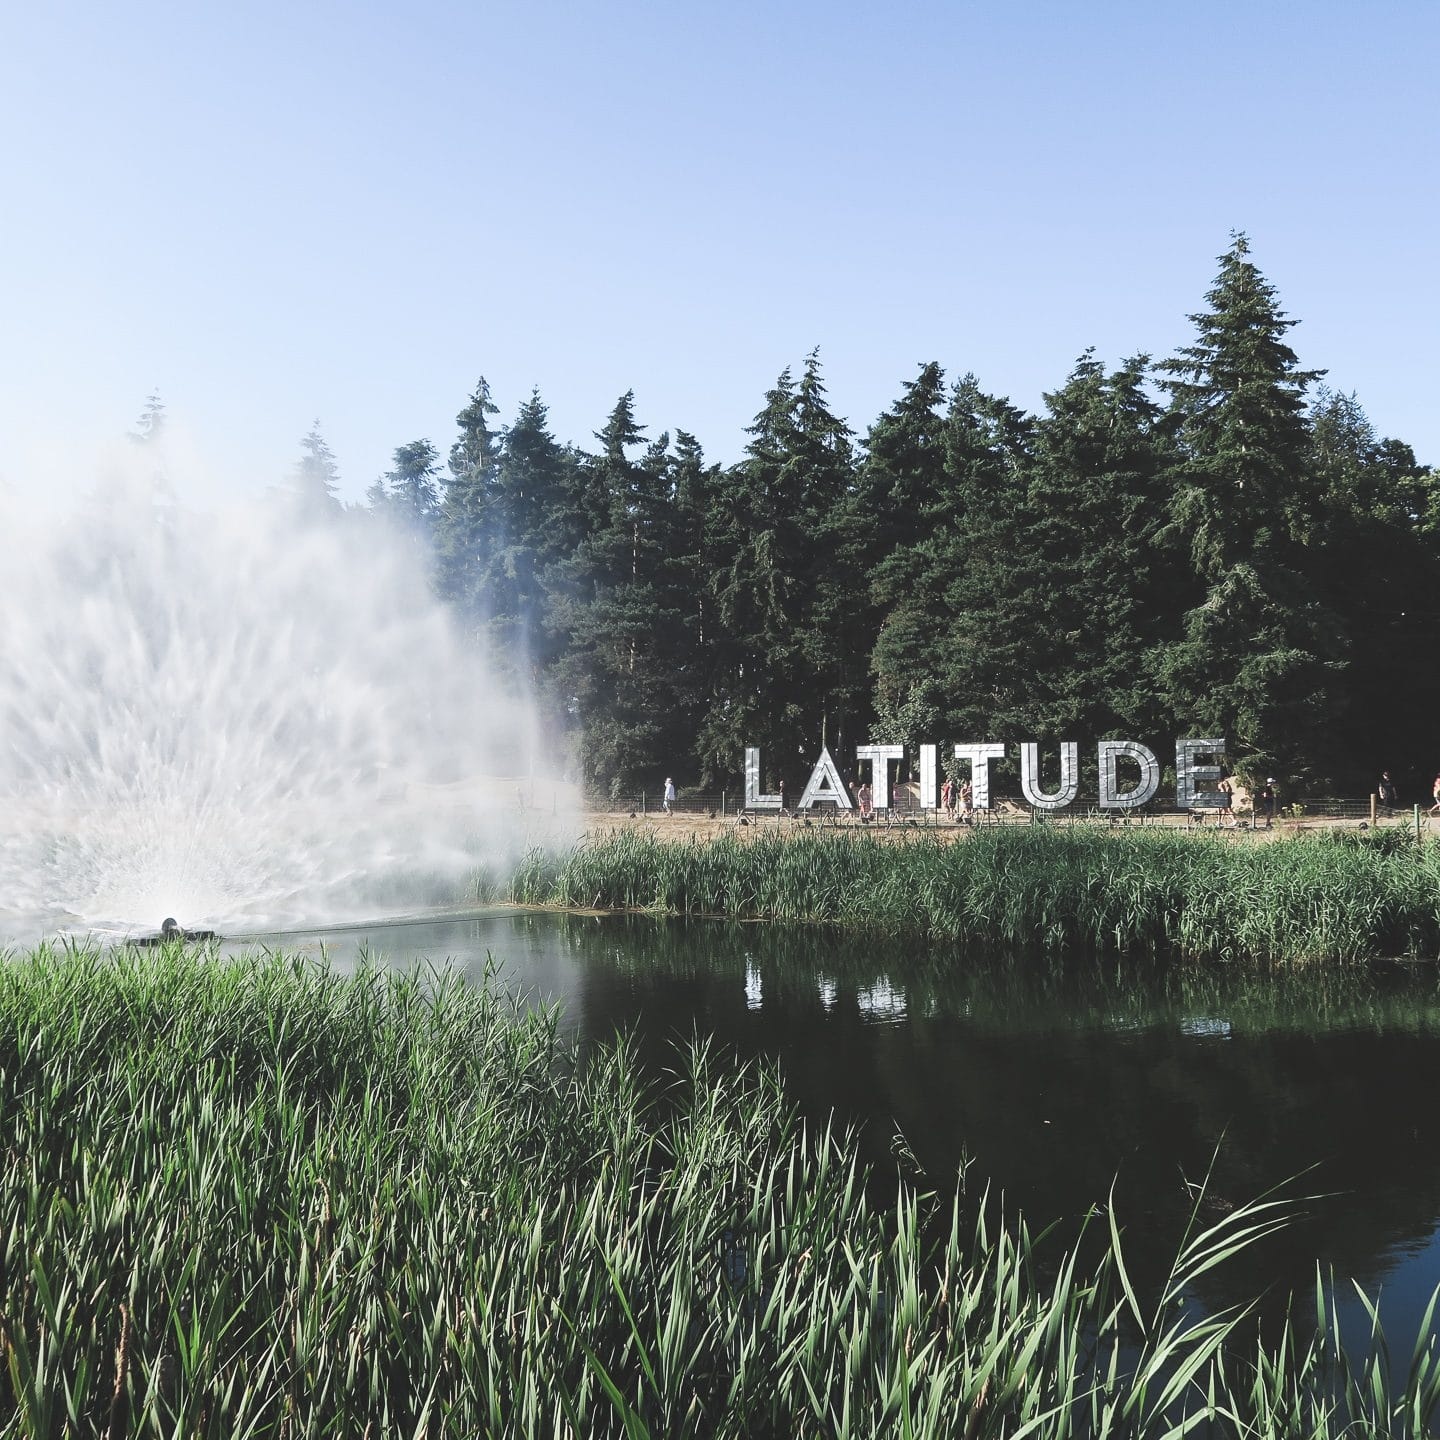 Festival Diaries: Latitude | Curiously Conscious